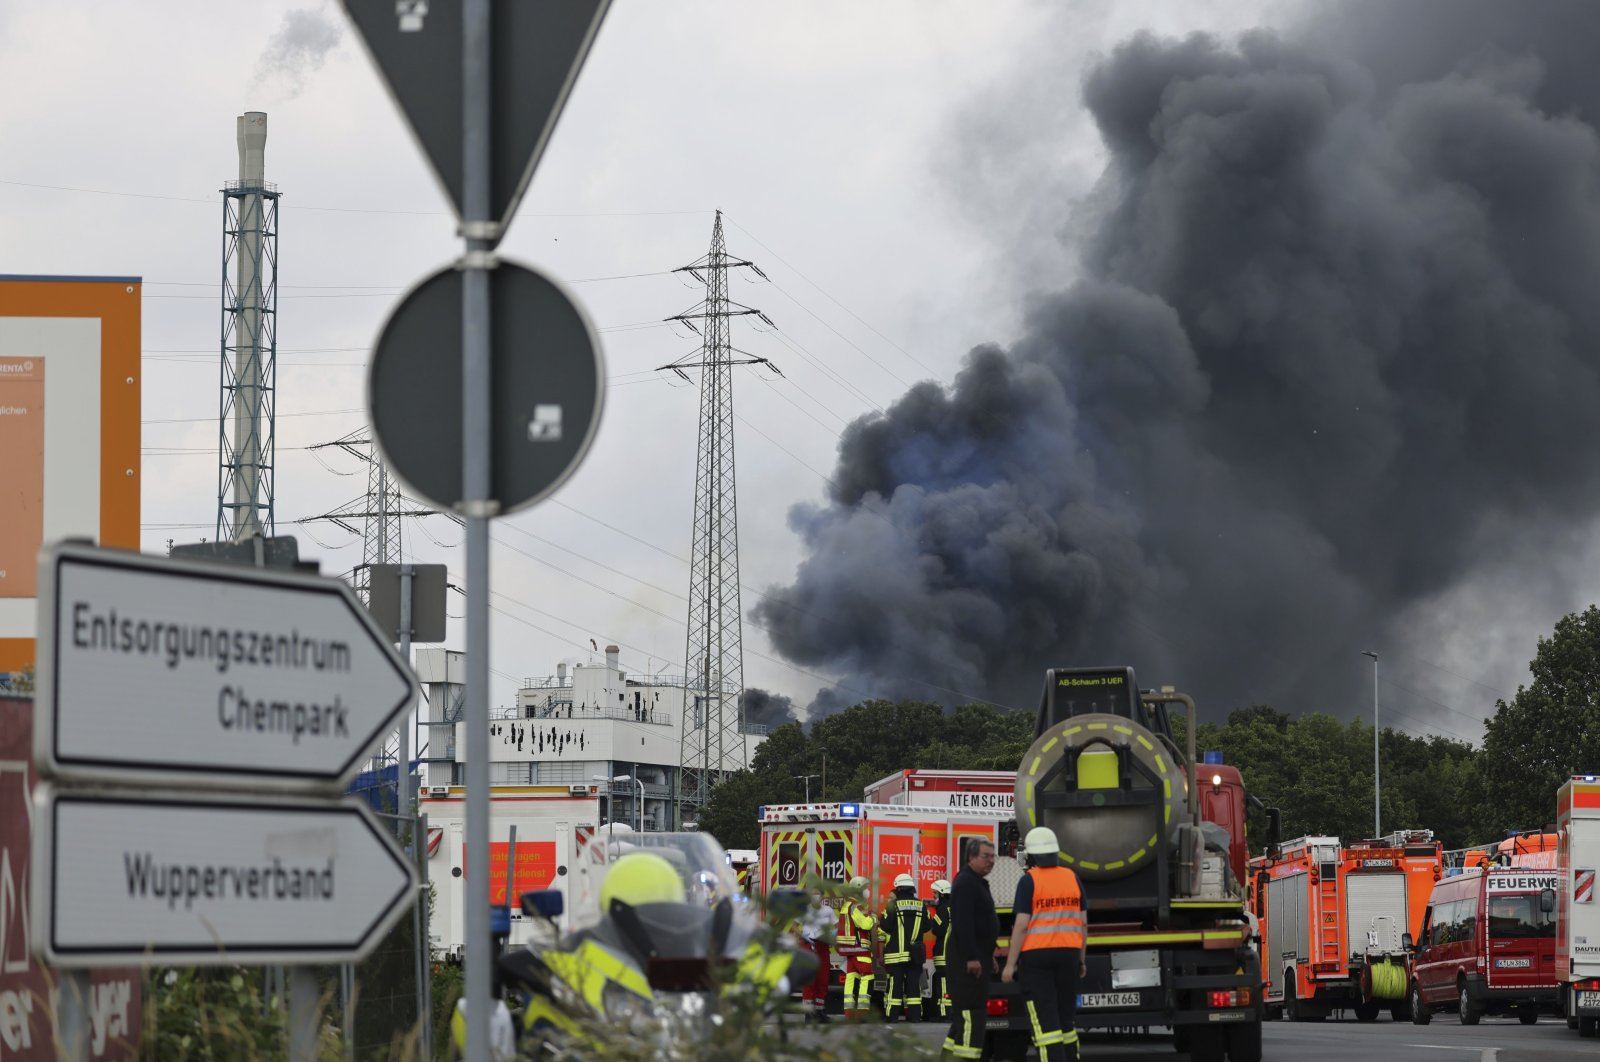 A dark cloud of smoke rises above the Chempark in Leverkusen, Germany, Tuesday, July 27, 2021. After an explosion, fire brigade, rescue forces and police are currently in a large-scale operation, the police explained. (Oliver Berg/dpa via AP)